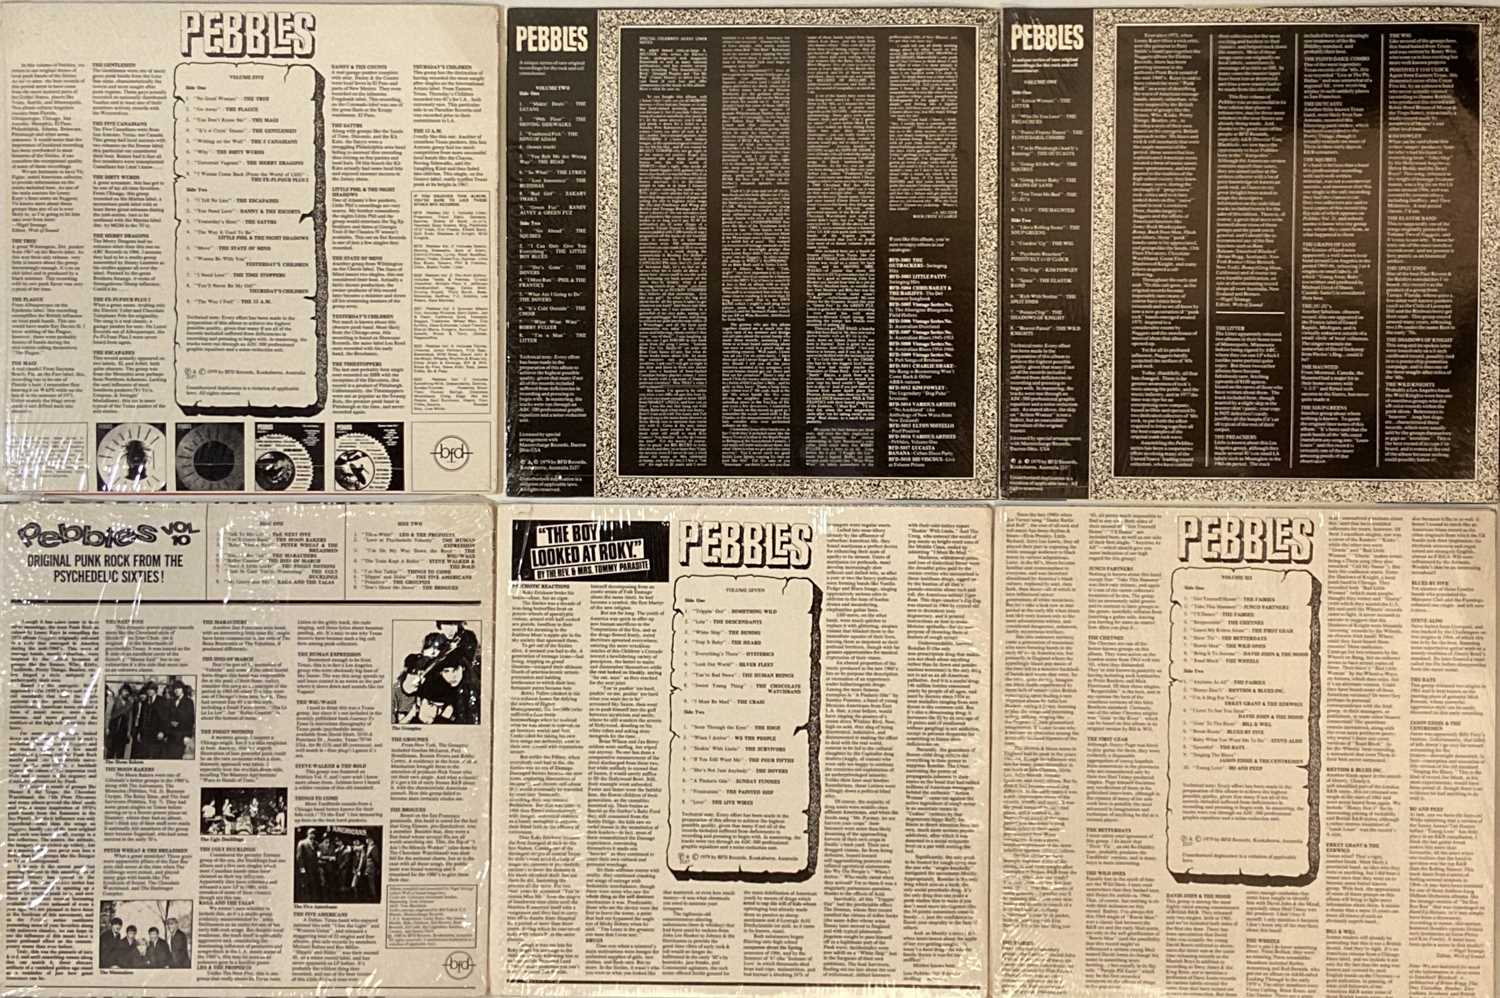 PEBBLES (COMPILATION) LPs. - Image 2 of 2